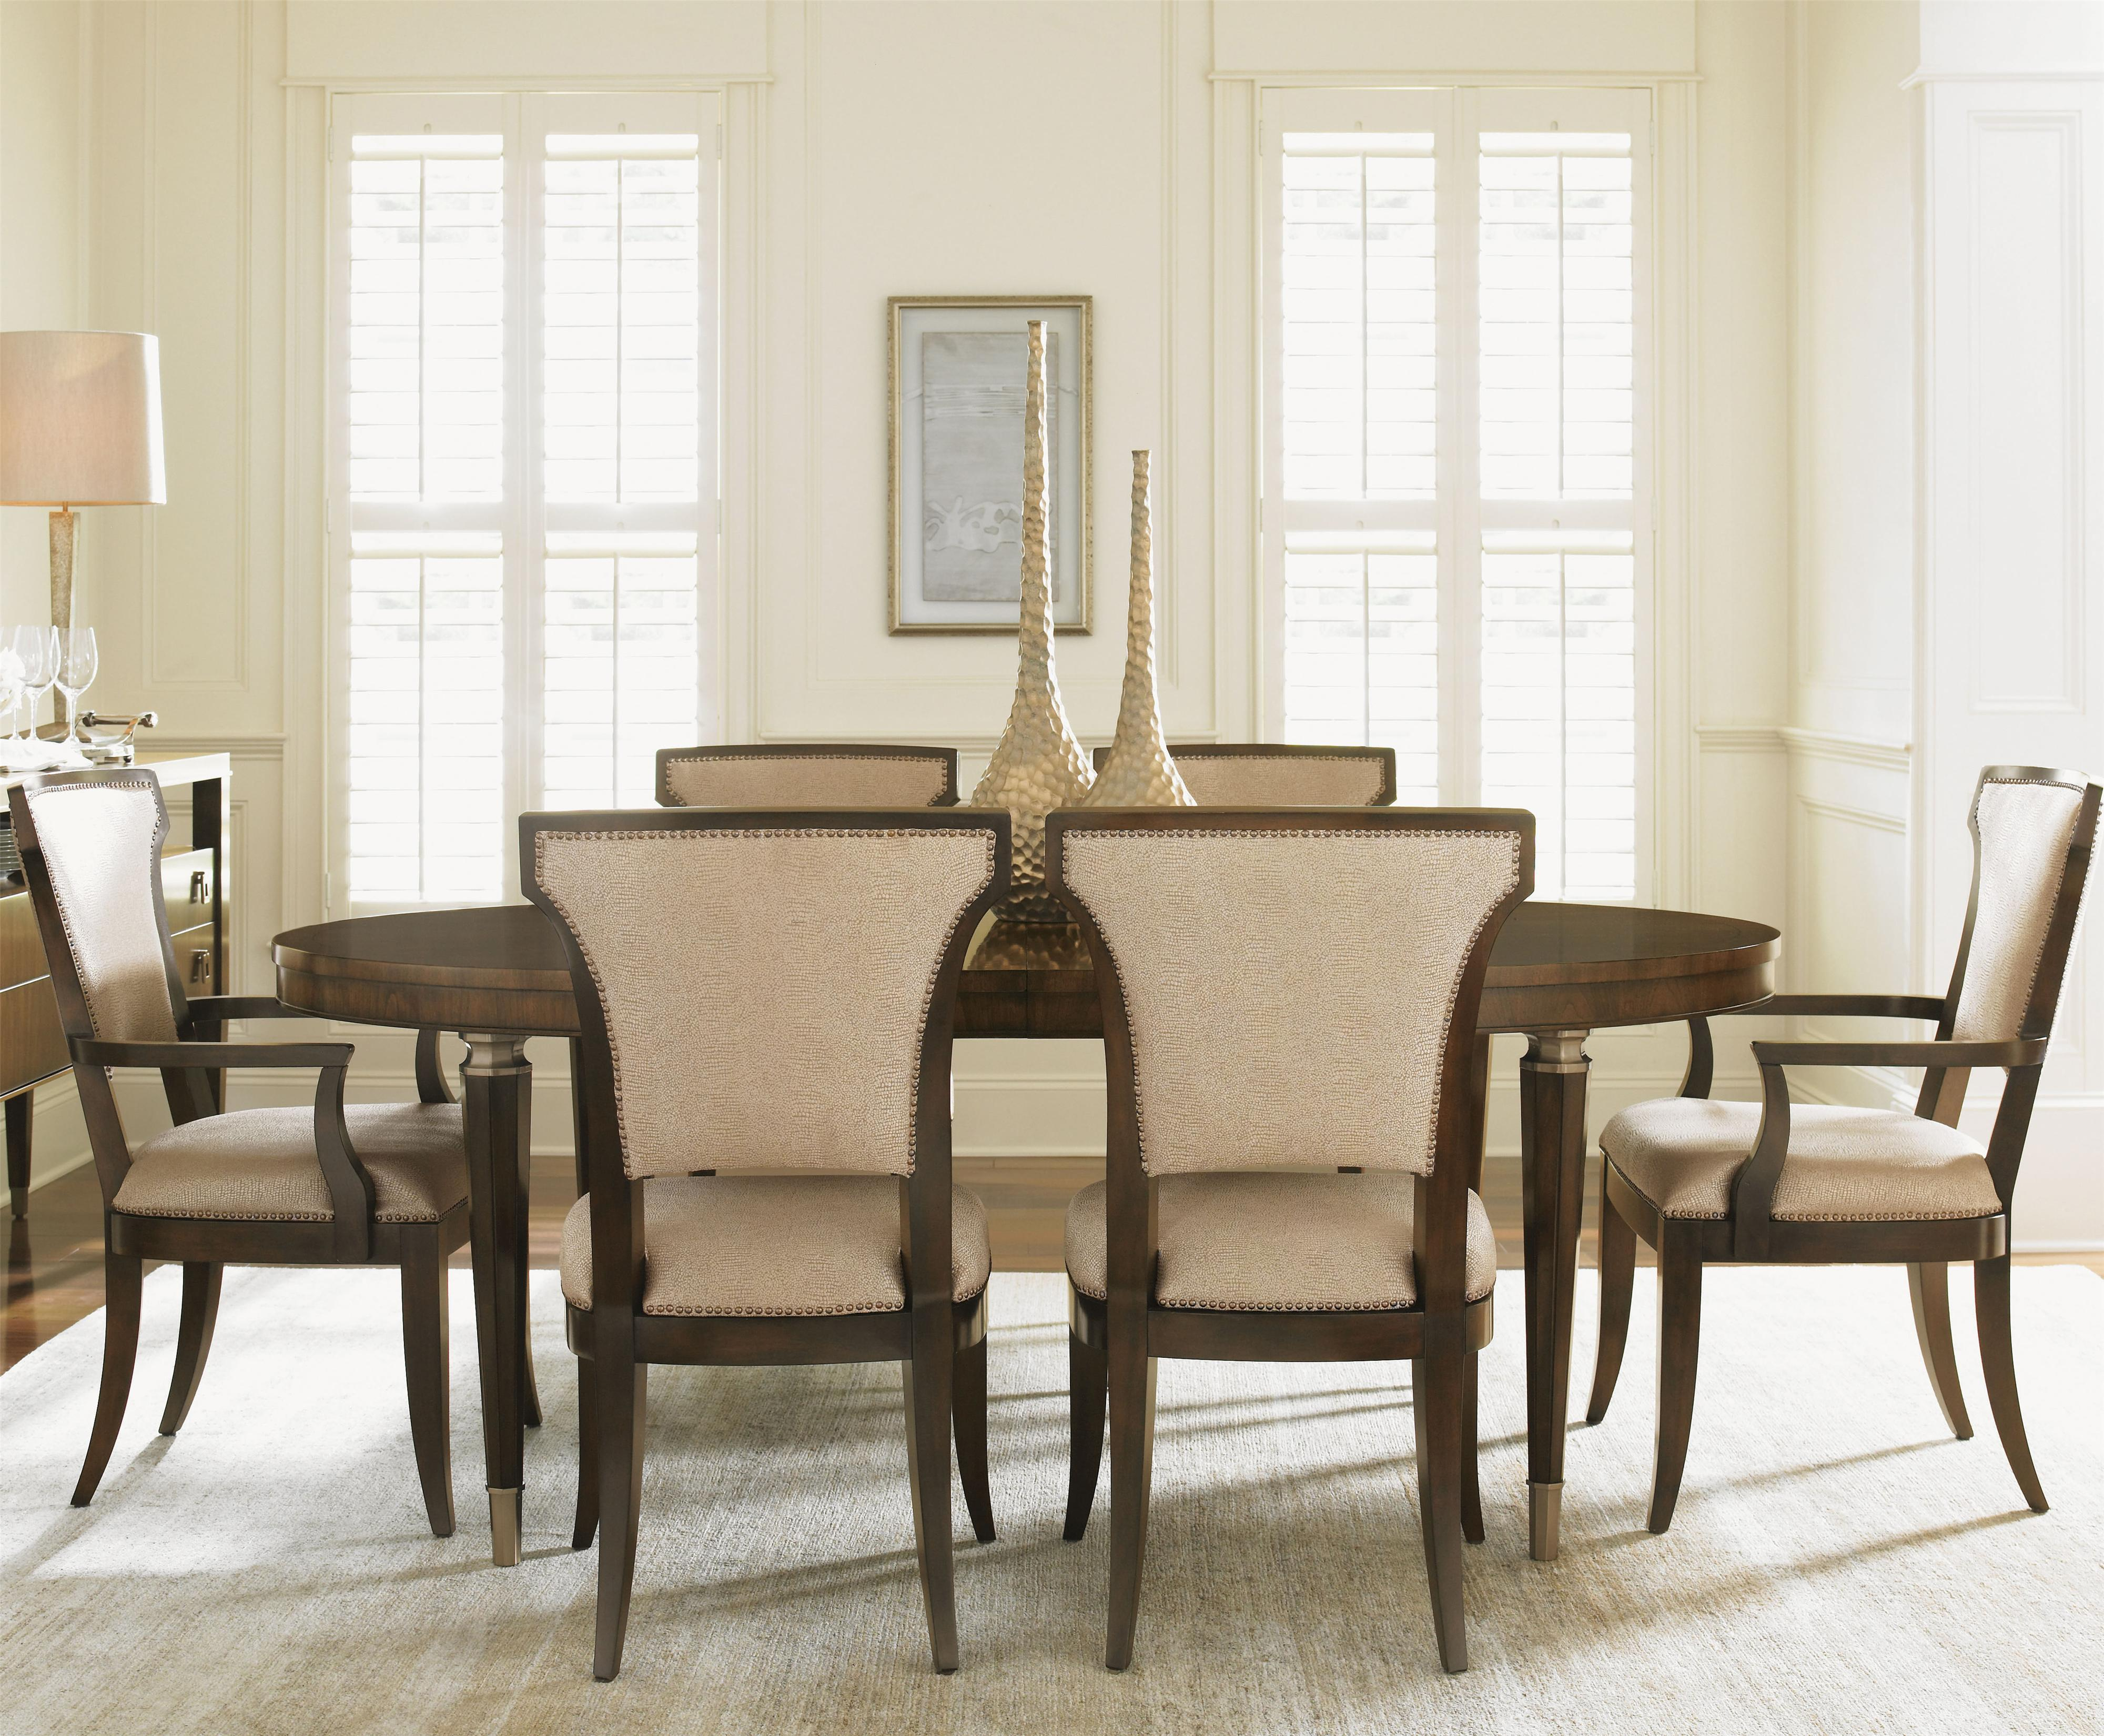 Tower Place 7 Piece Dining Set with Drake Table by Lexington at Baer's Furniture